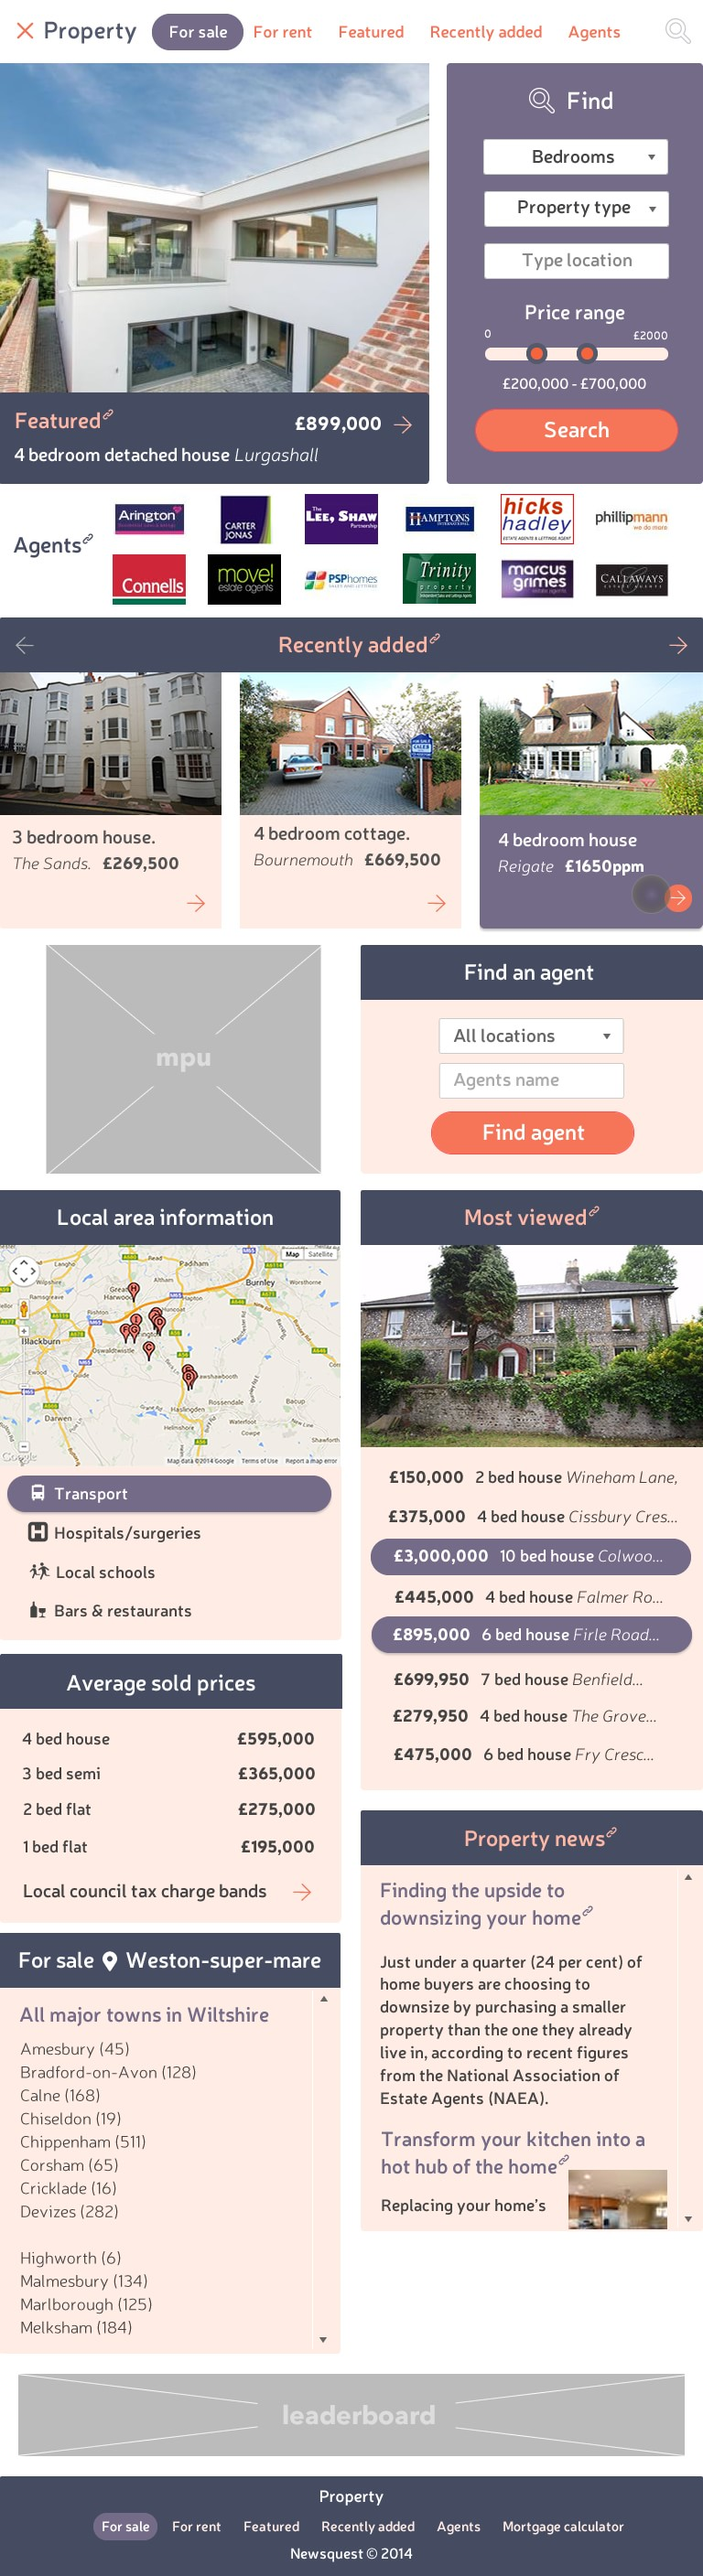 Property landing page tablet breakpoint